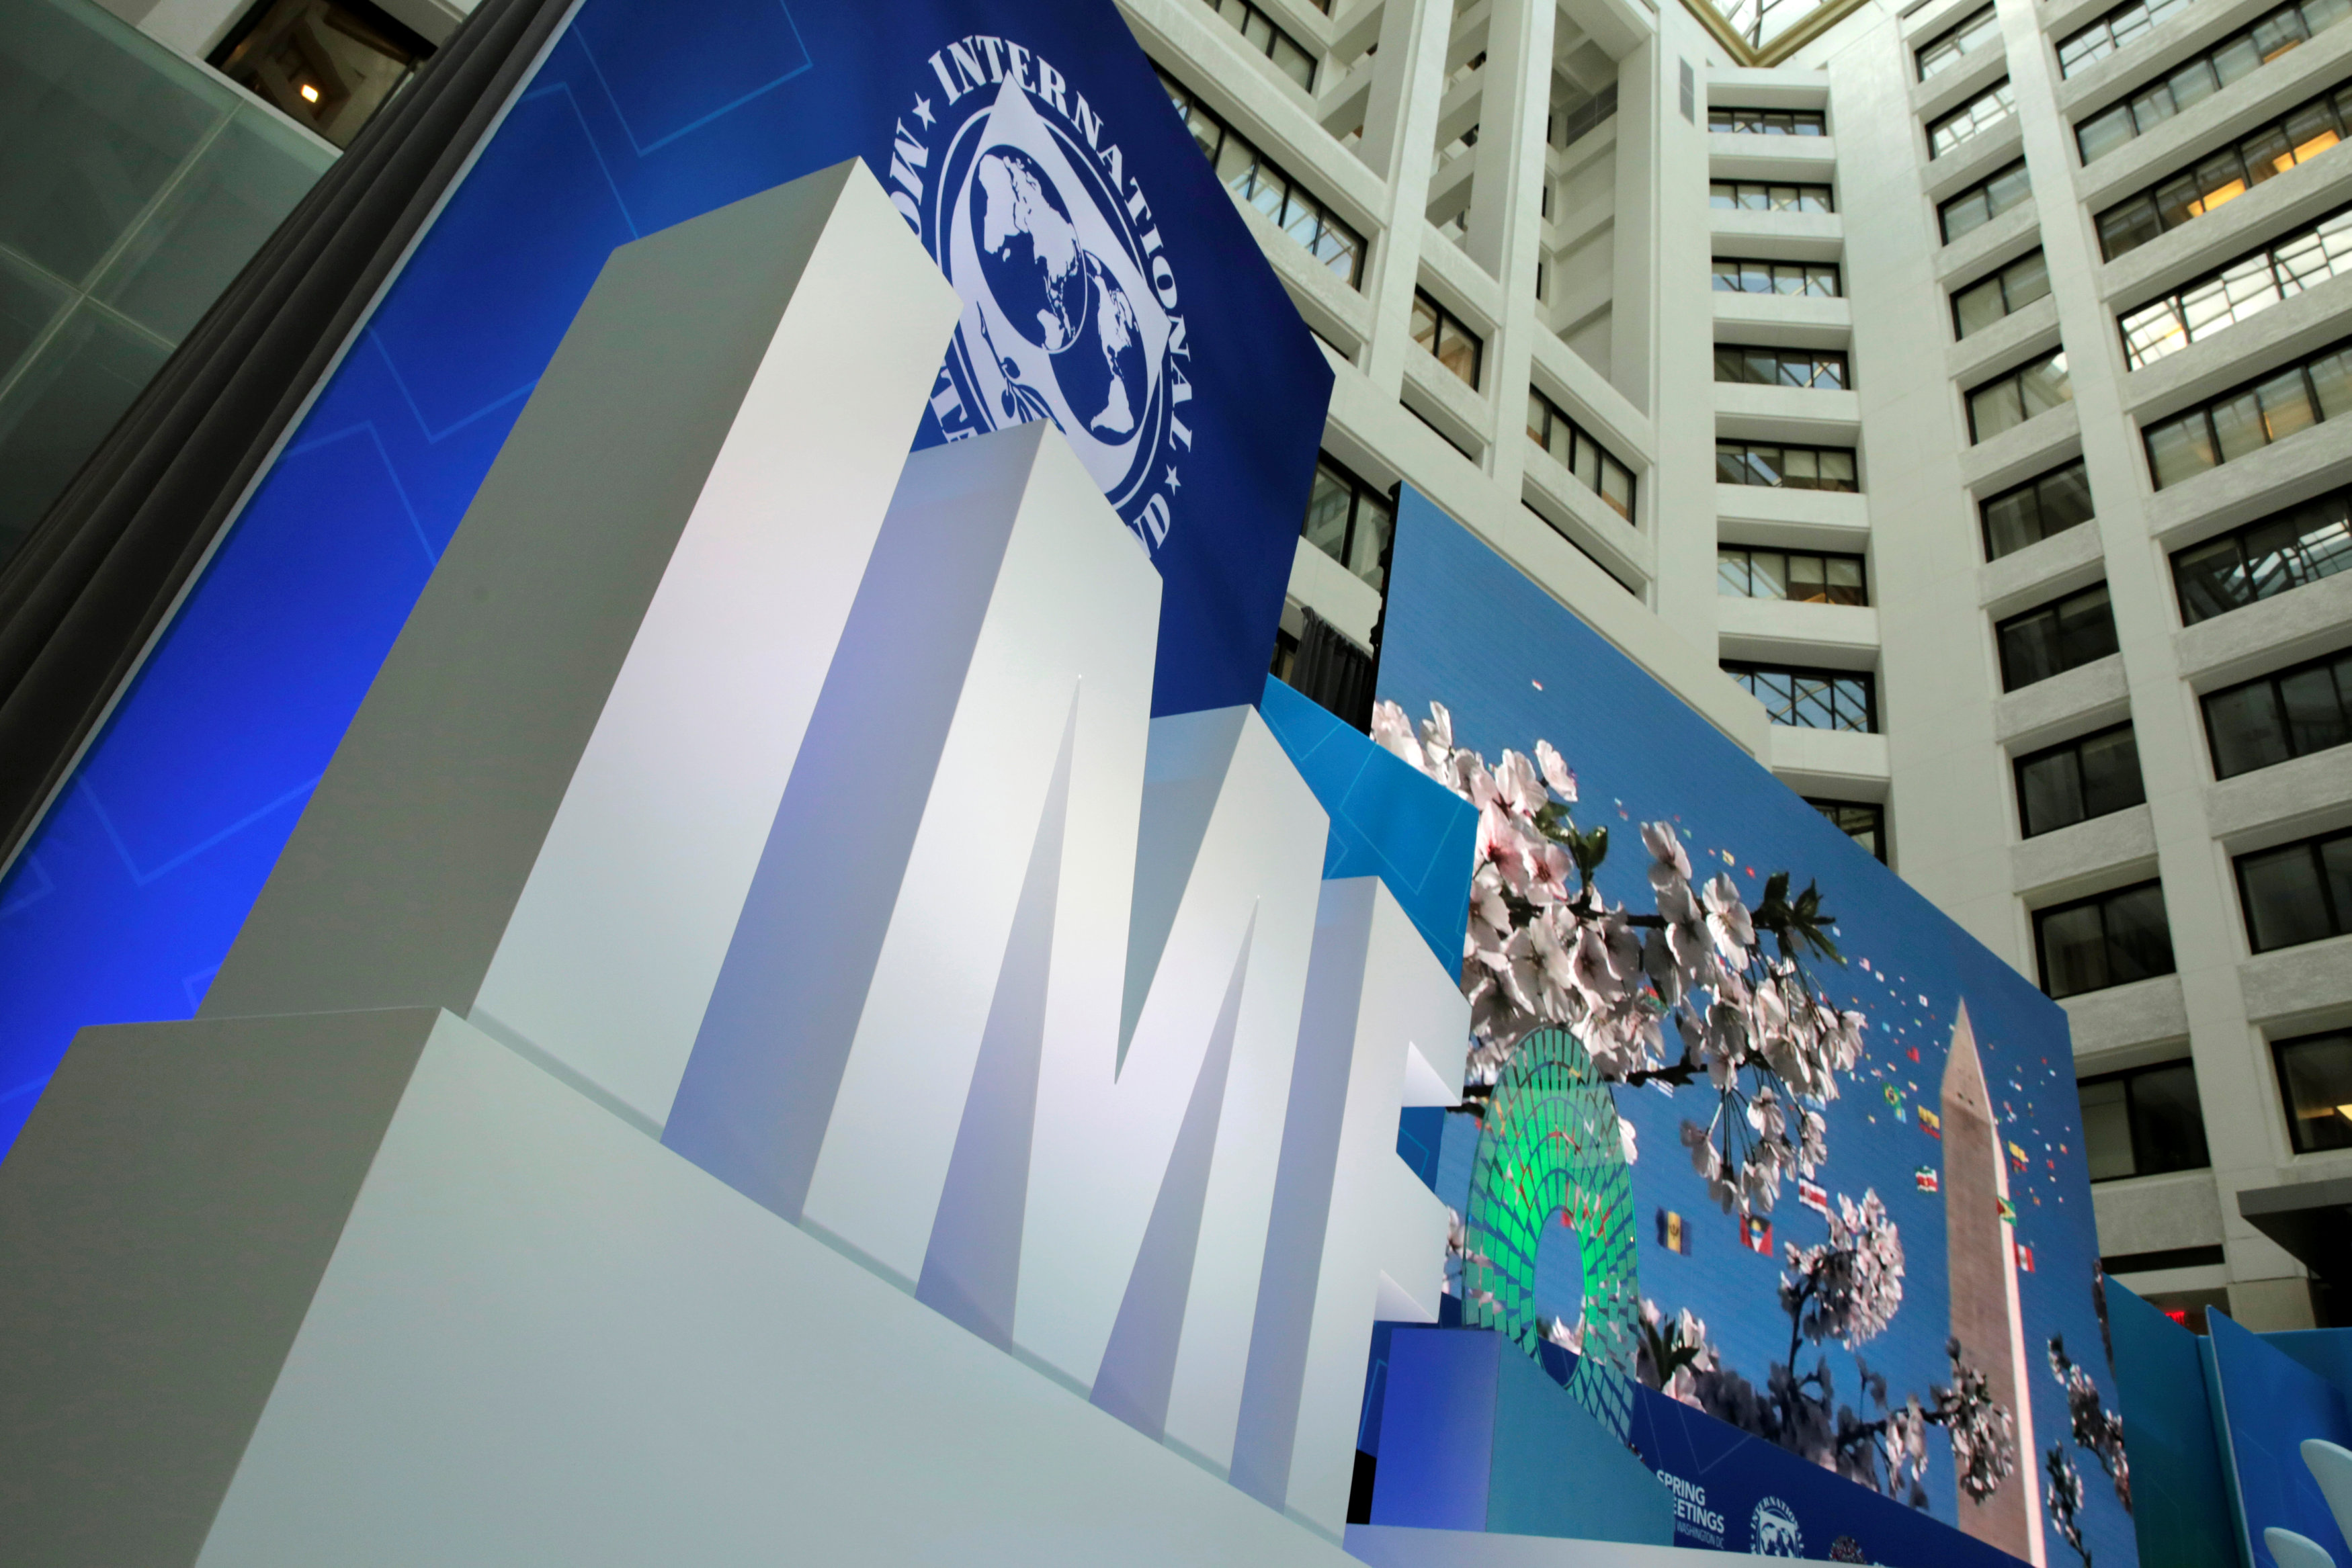 Reducing inequality necessary to ensure long term growth: World Bank